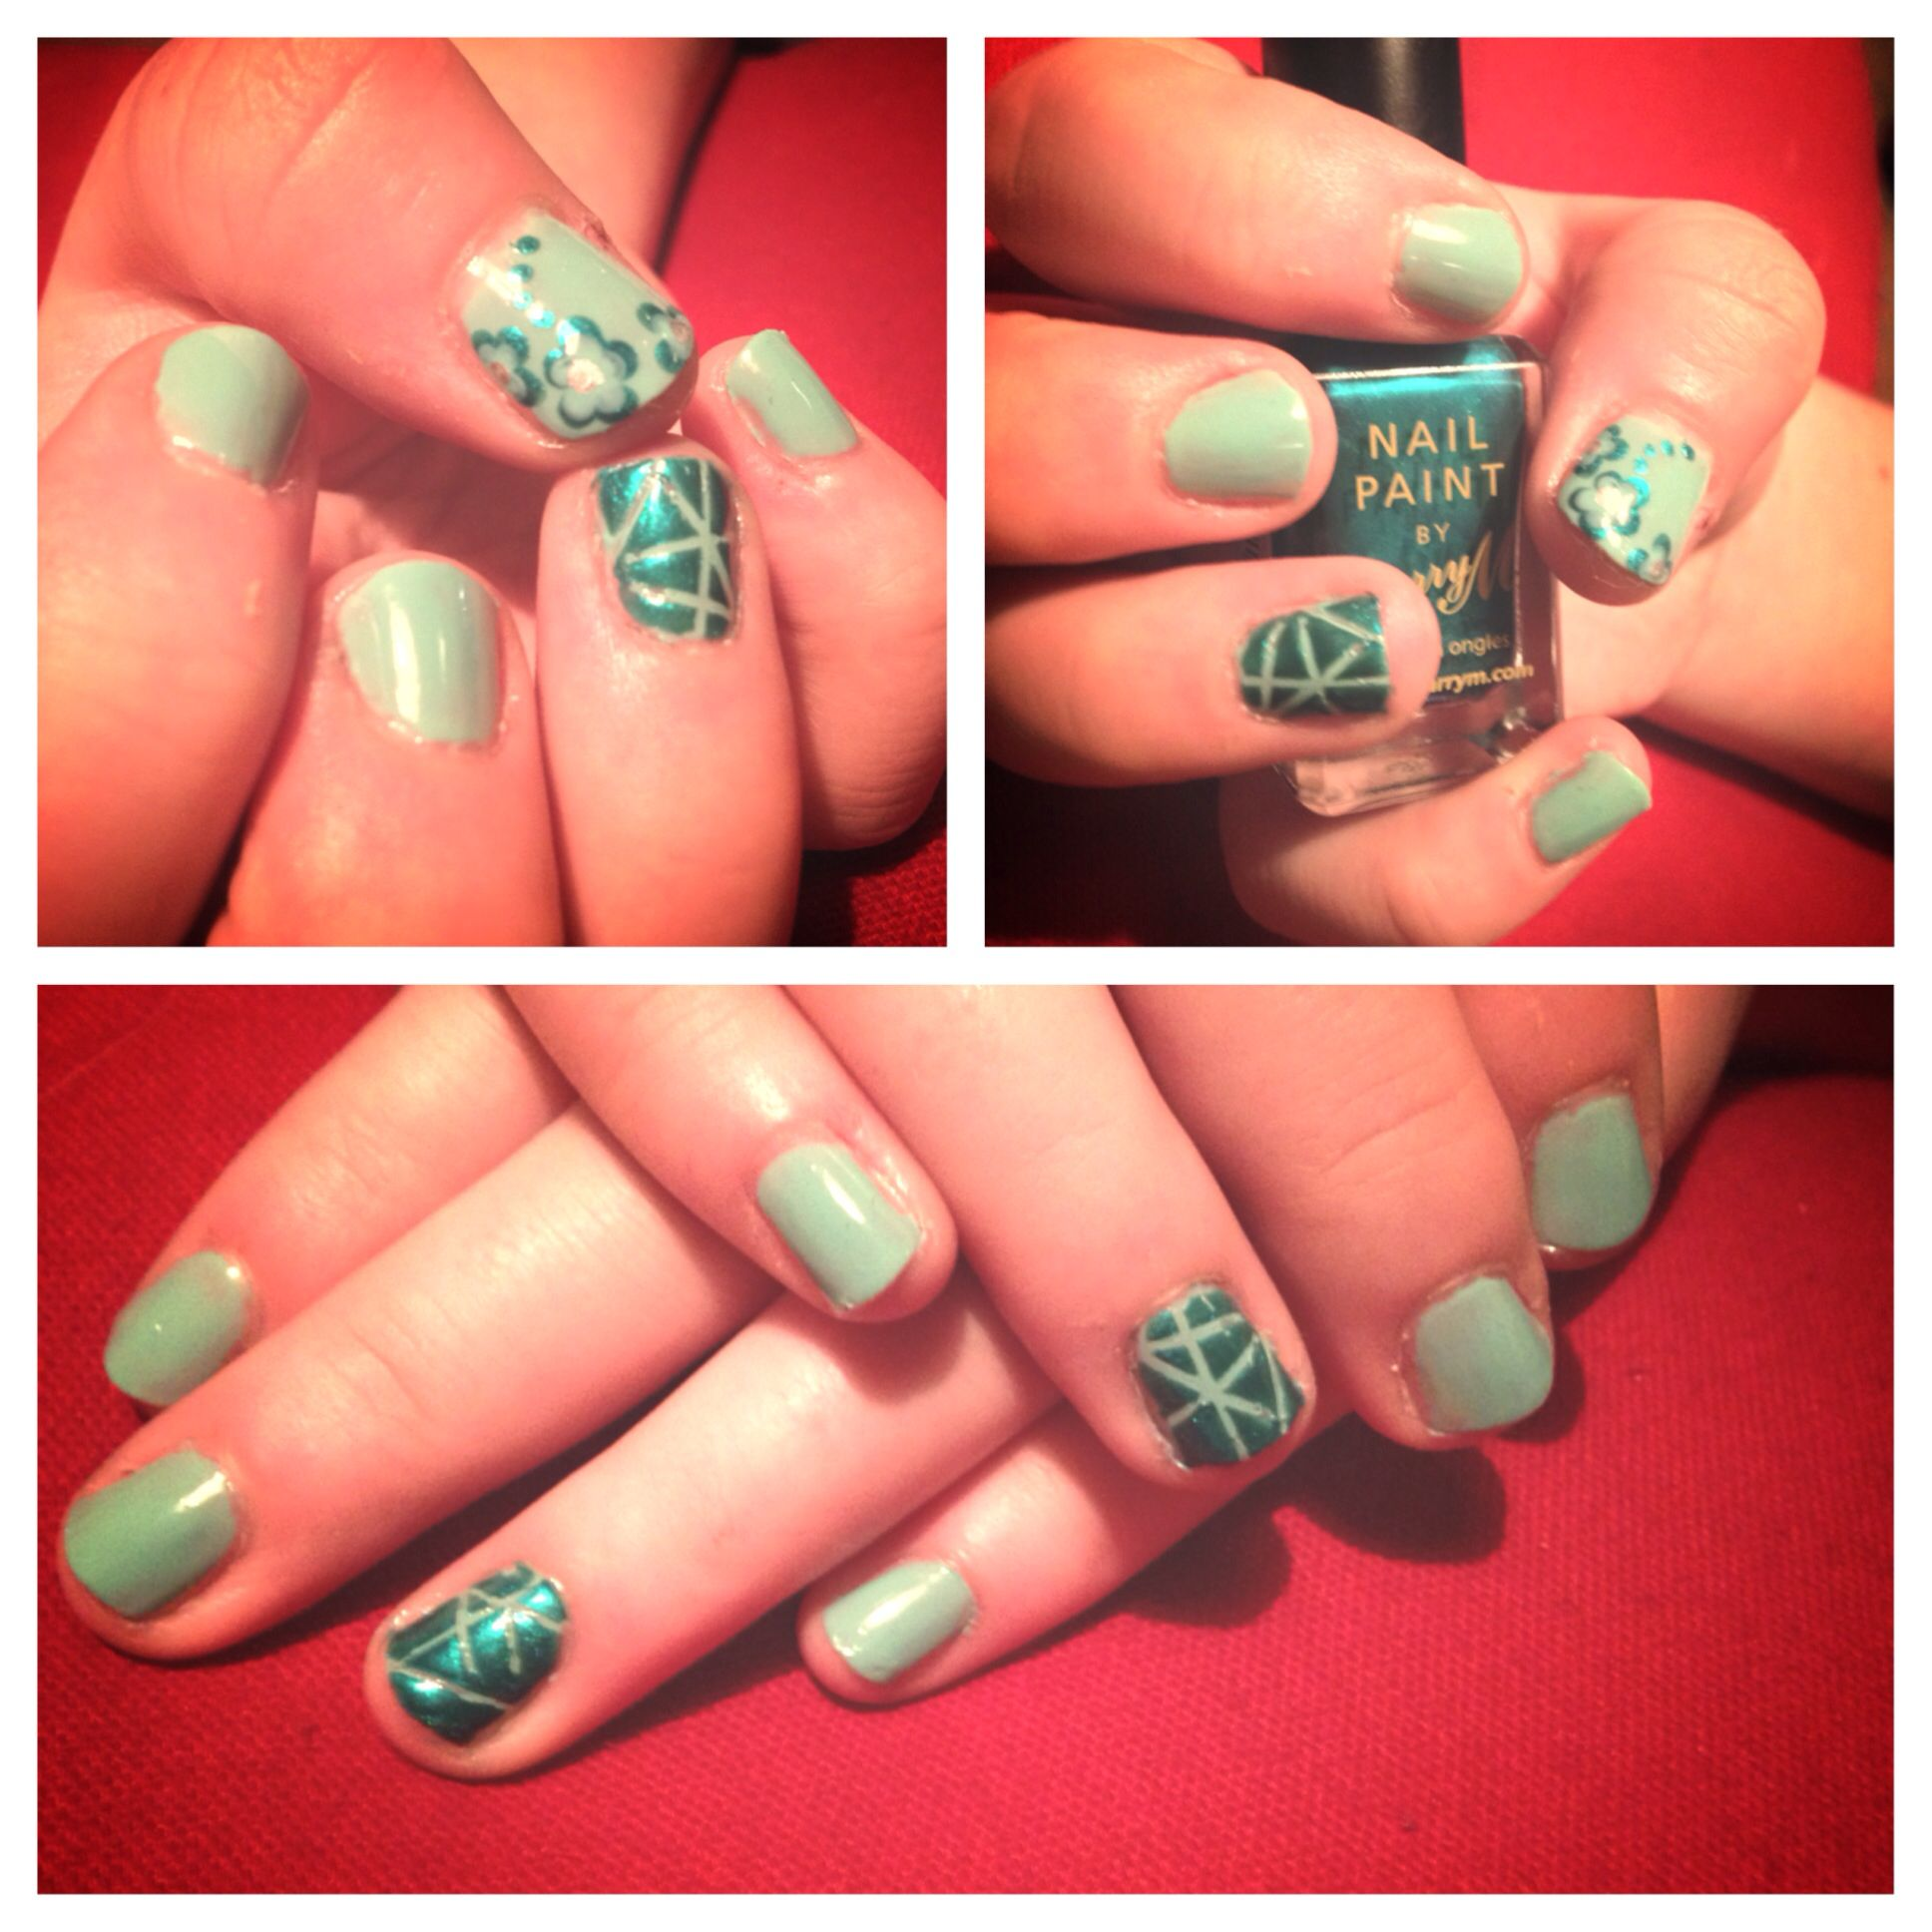 Nail art. Barry m. Nails. Teal. Mint. Green. Flowers.